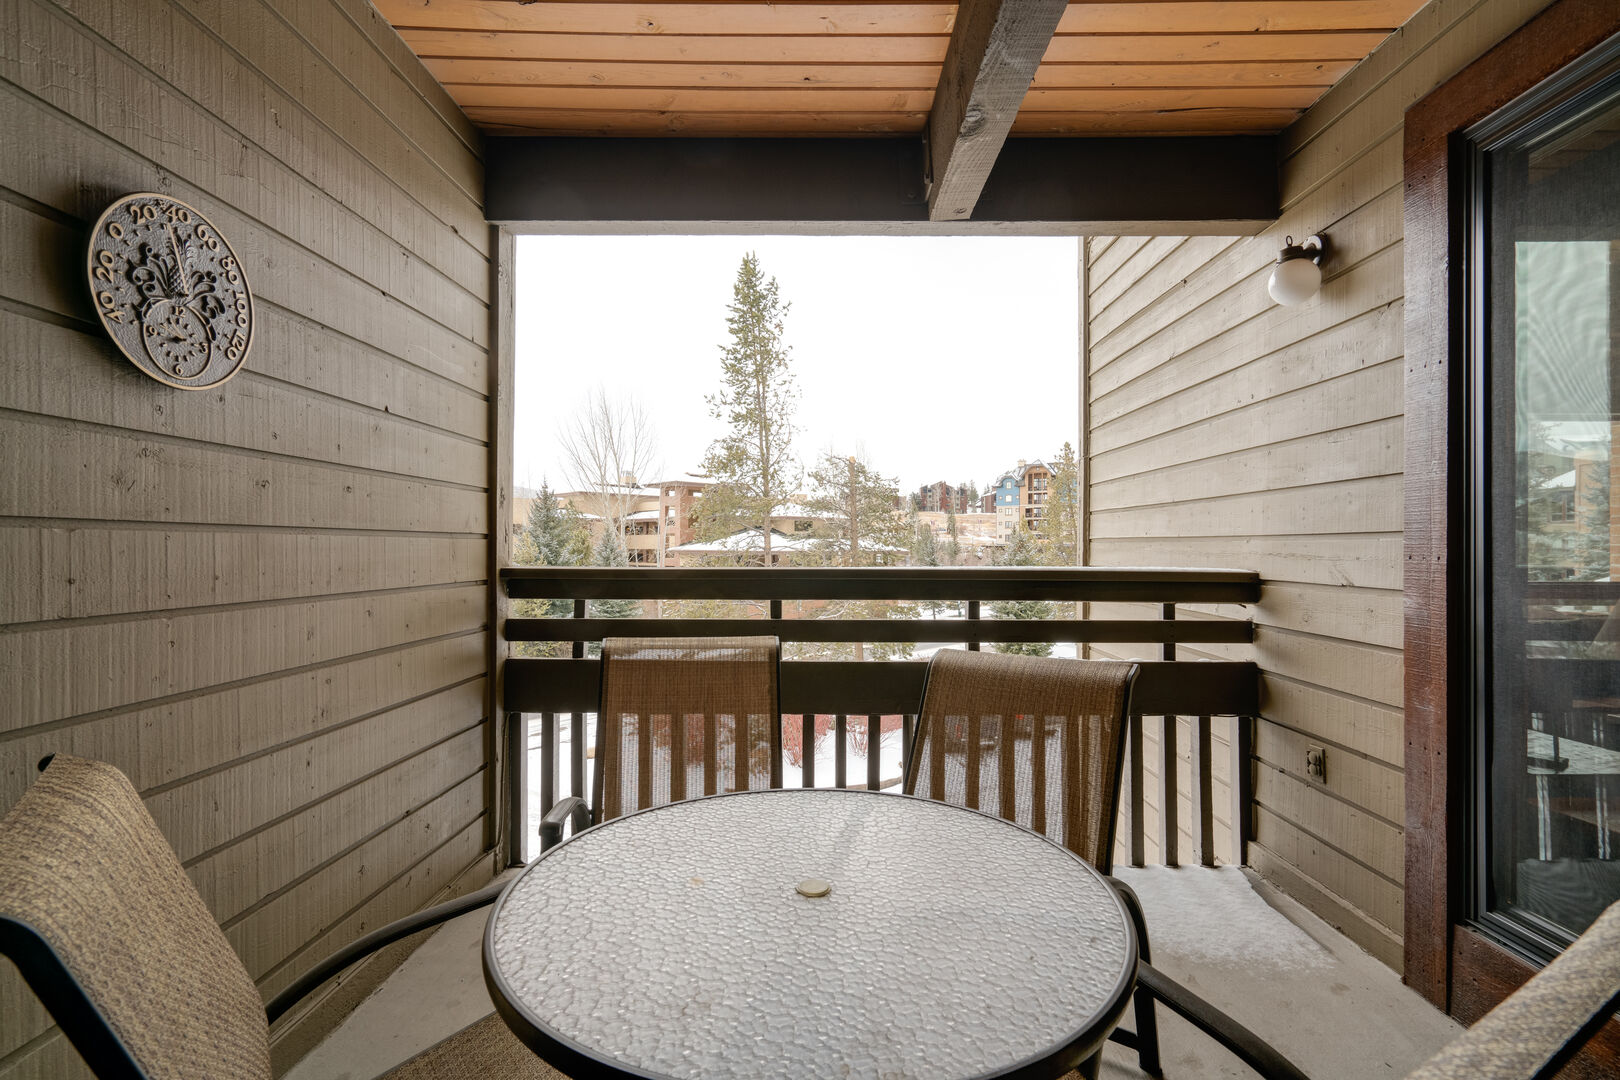 Covered patio with table and chairs